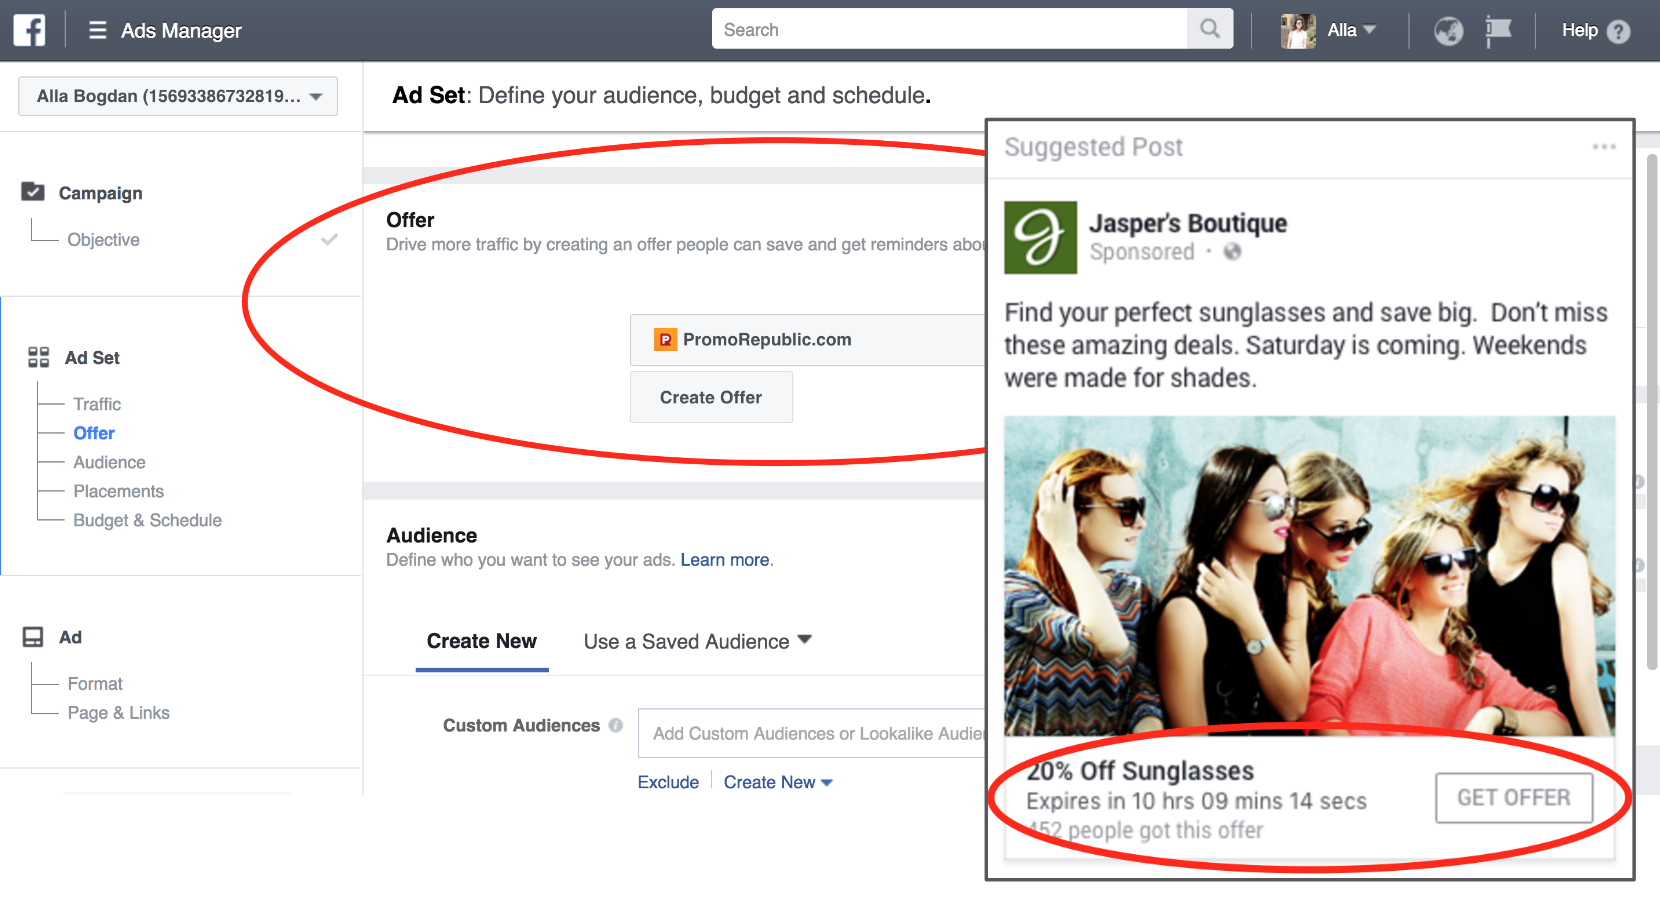 Facebook ads offer example